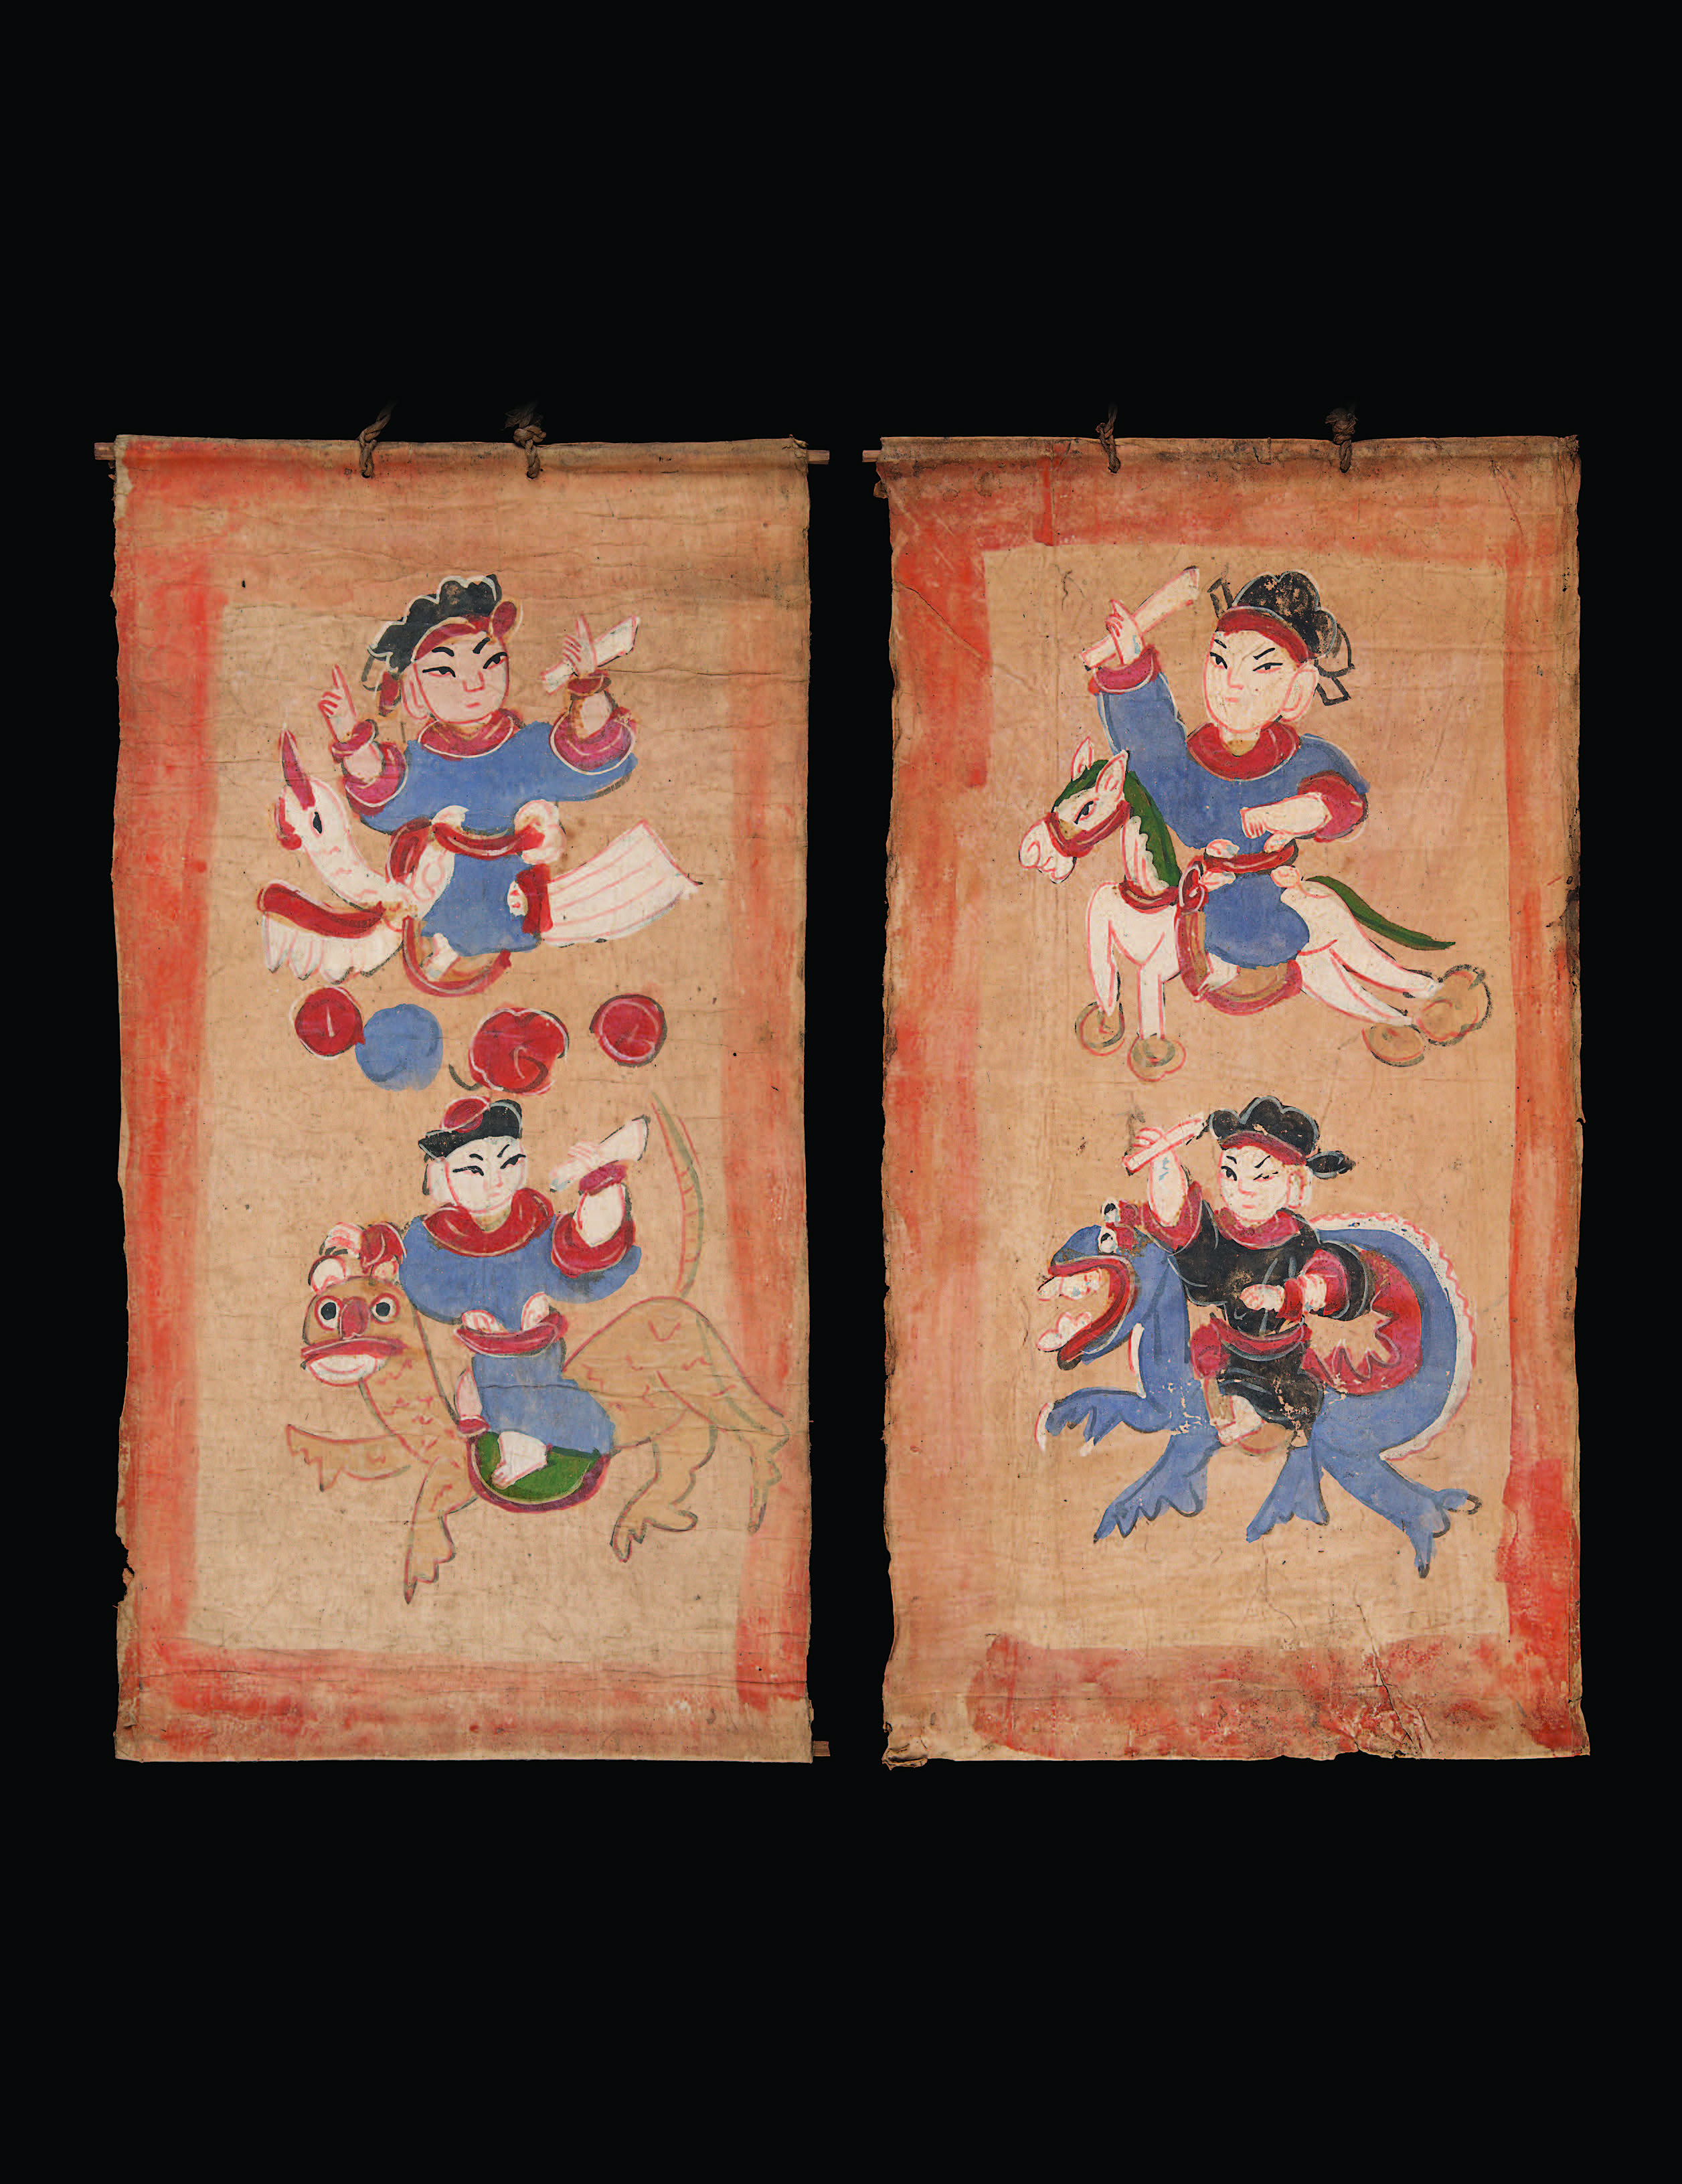 The essential three deity paintings:The High Constable; Minor Hoi Fan (God of the Sea); Heavenly Host (Ancestors), Yao culture, 1879, southern China. Mulberry paper, natural pigments, approximately 44 ½ × 18 inches each. Gift of Mark Rapoport, MD, and Jane C. Hughes. Museum of International Folk Art (A.2015.67.1, A.2015.71.2, A.2015.71.1). Photographs by Blair Clark.